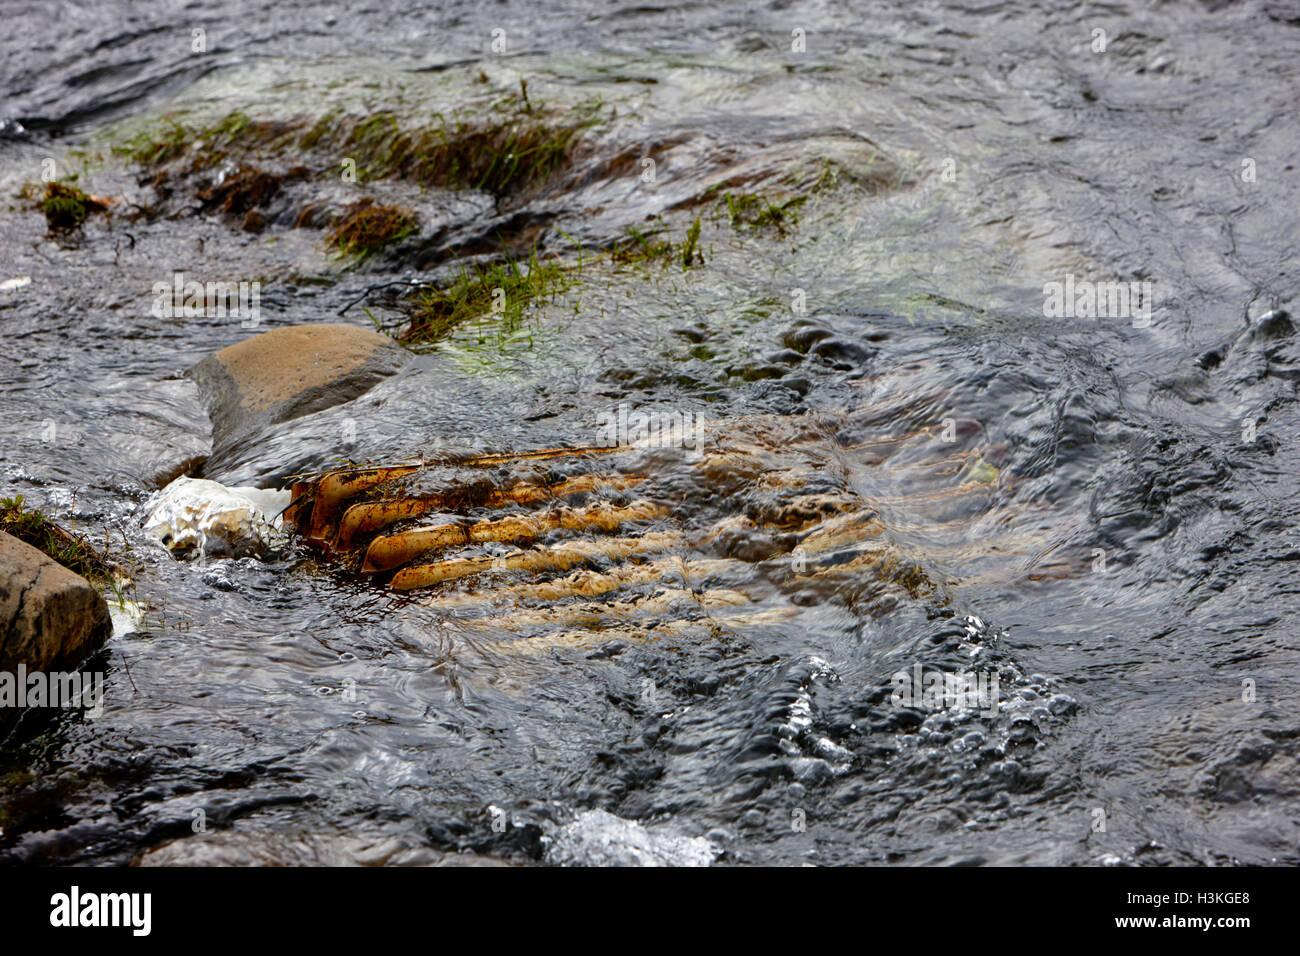 rusting metal radiator discarded in stream Iceland - Stock Image